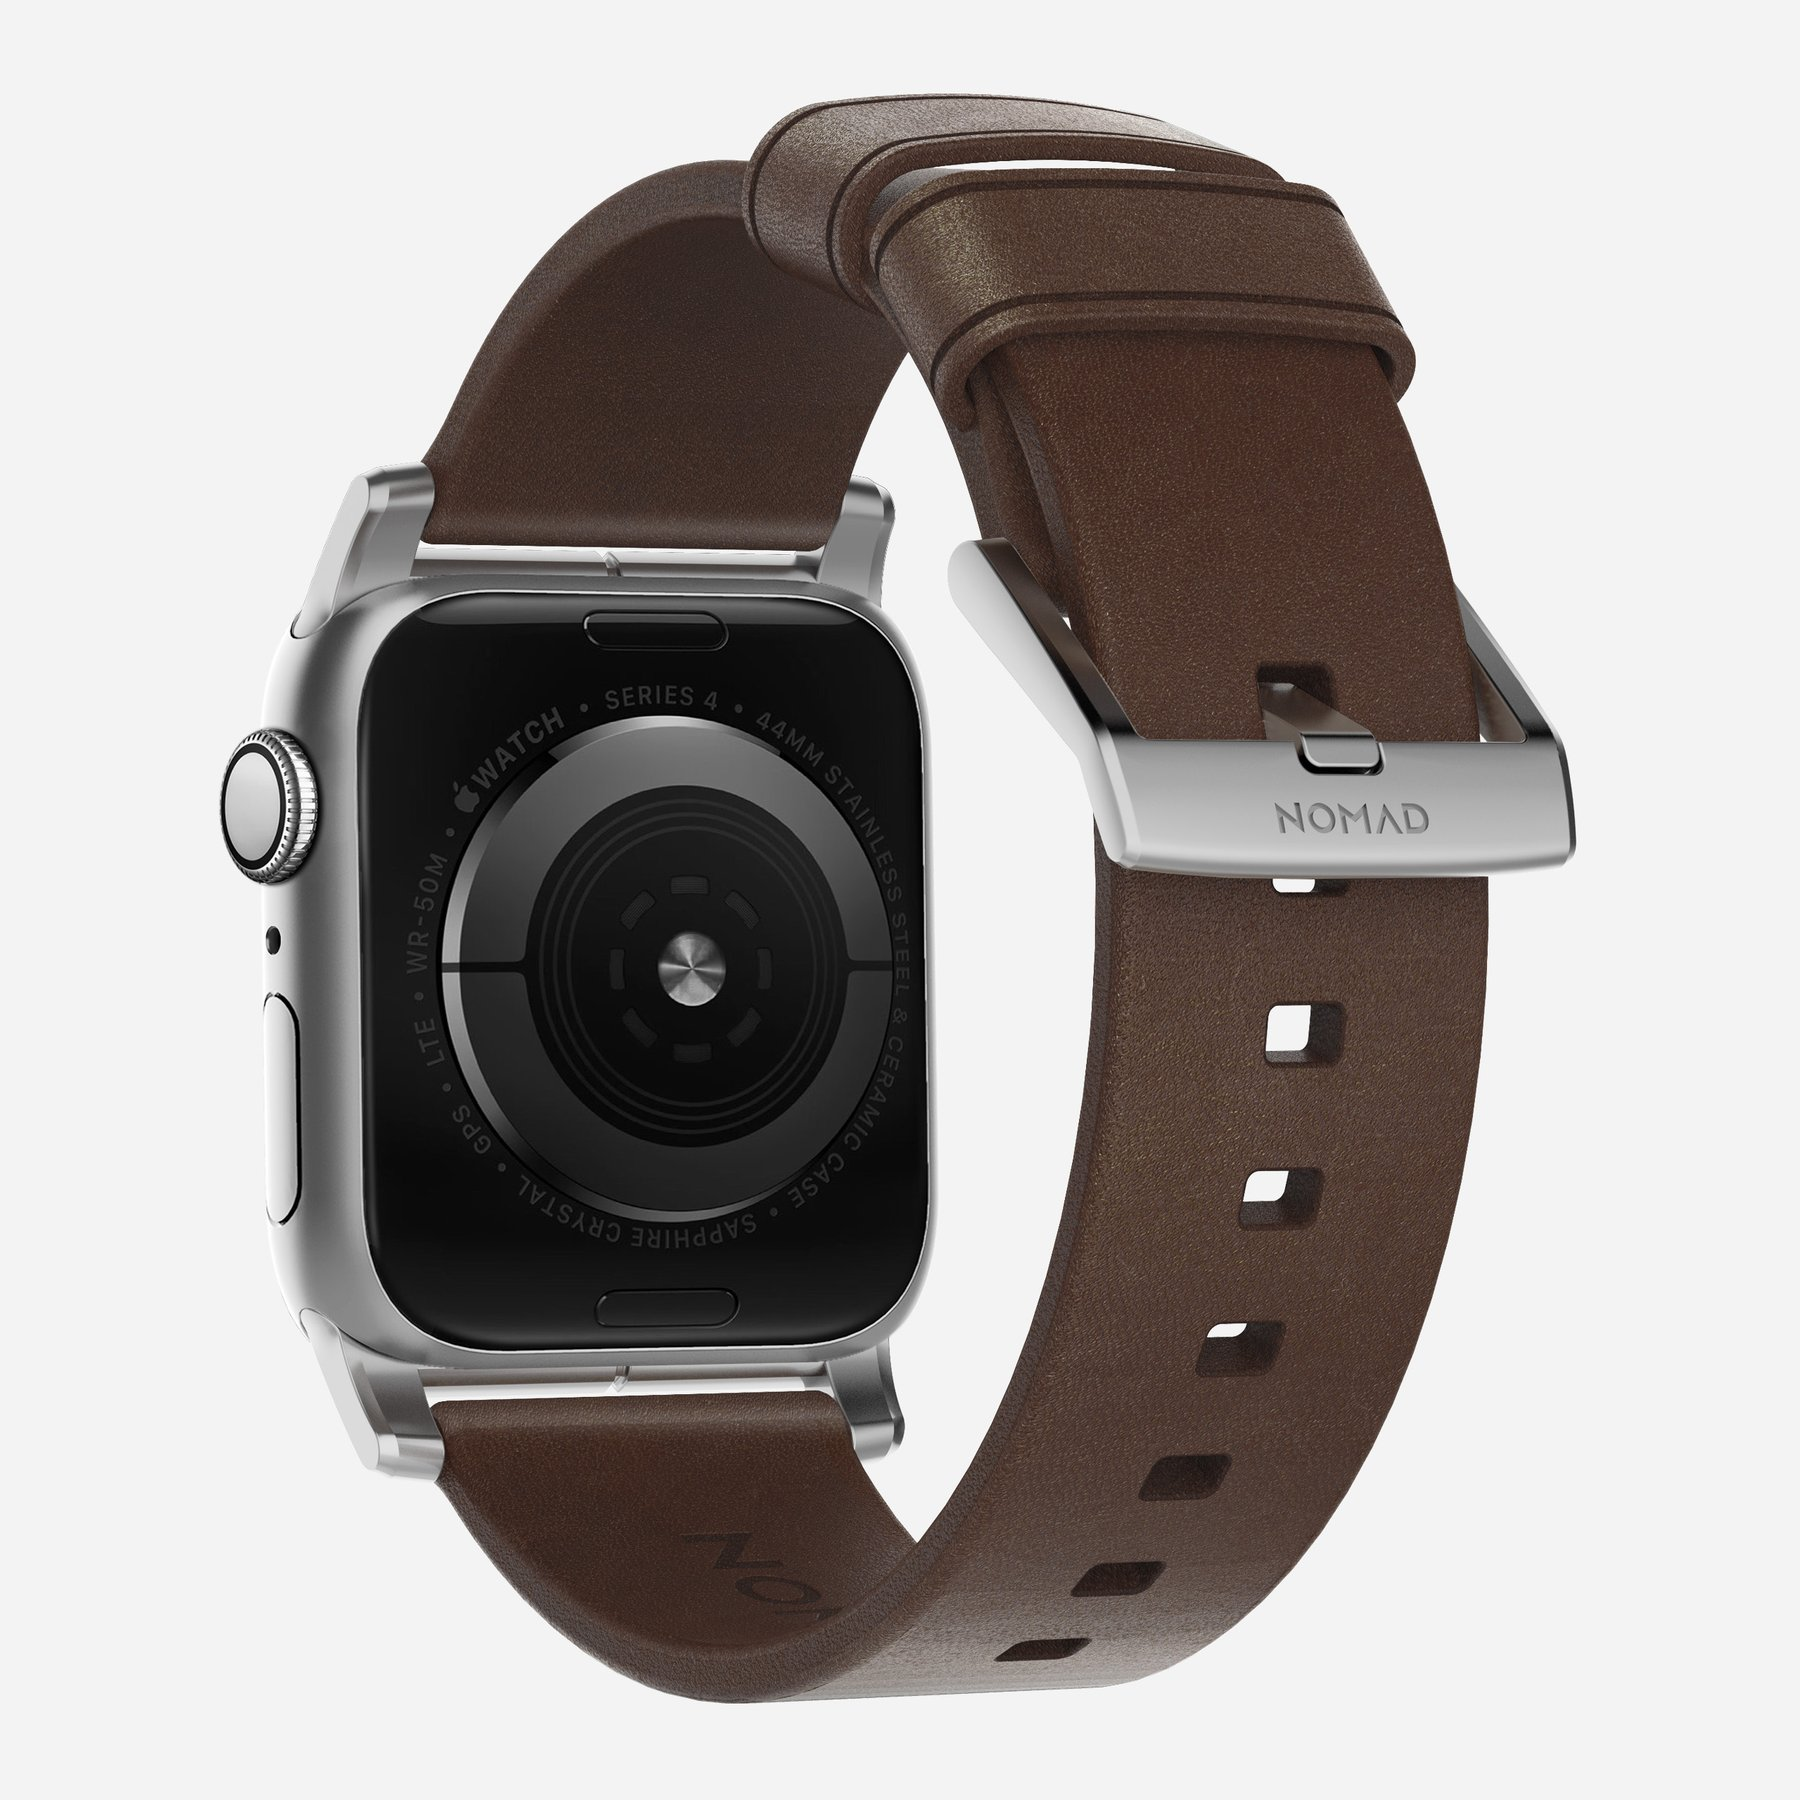 Nomad - Modern - Leather strap Apple Watch | Band-Band